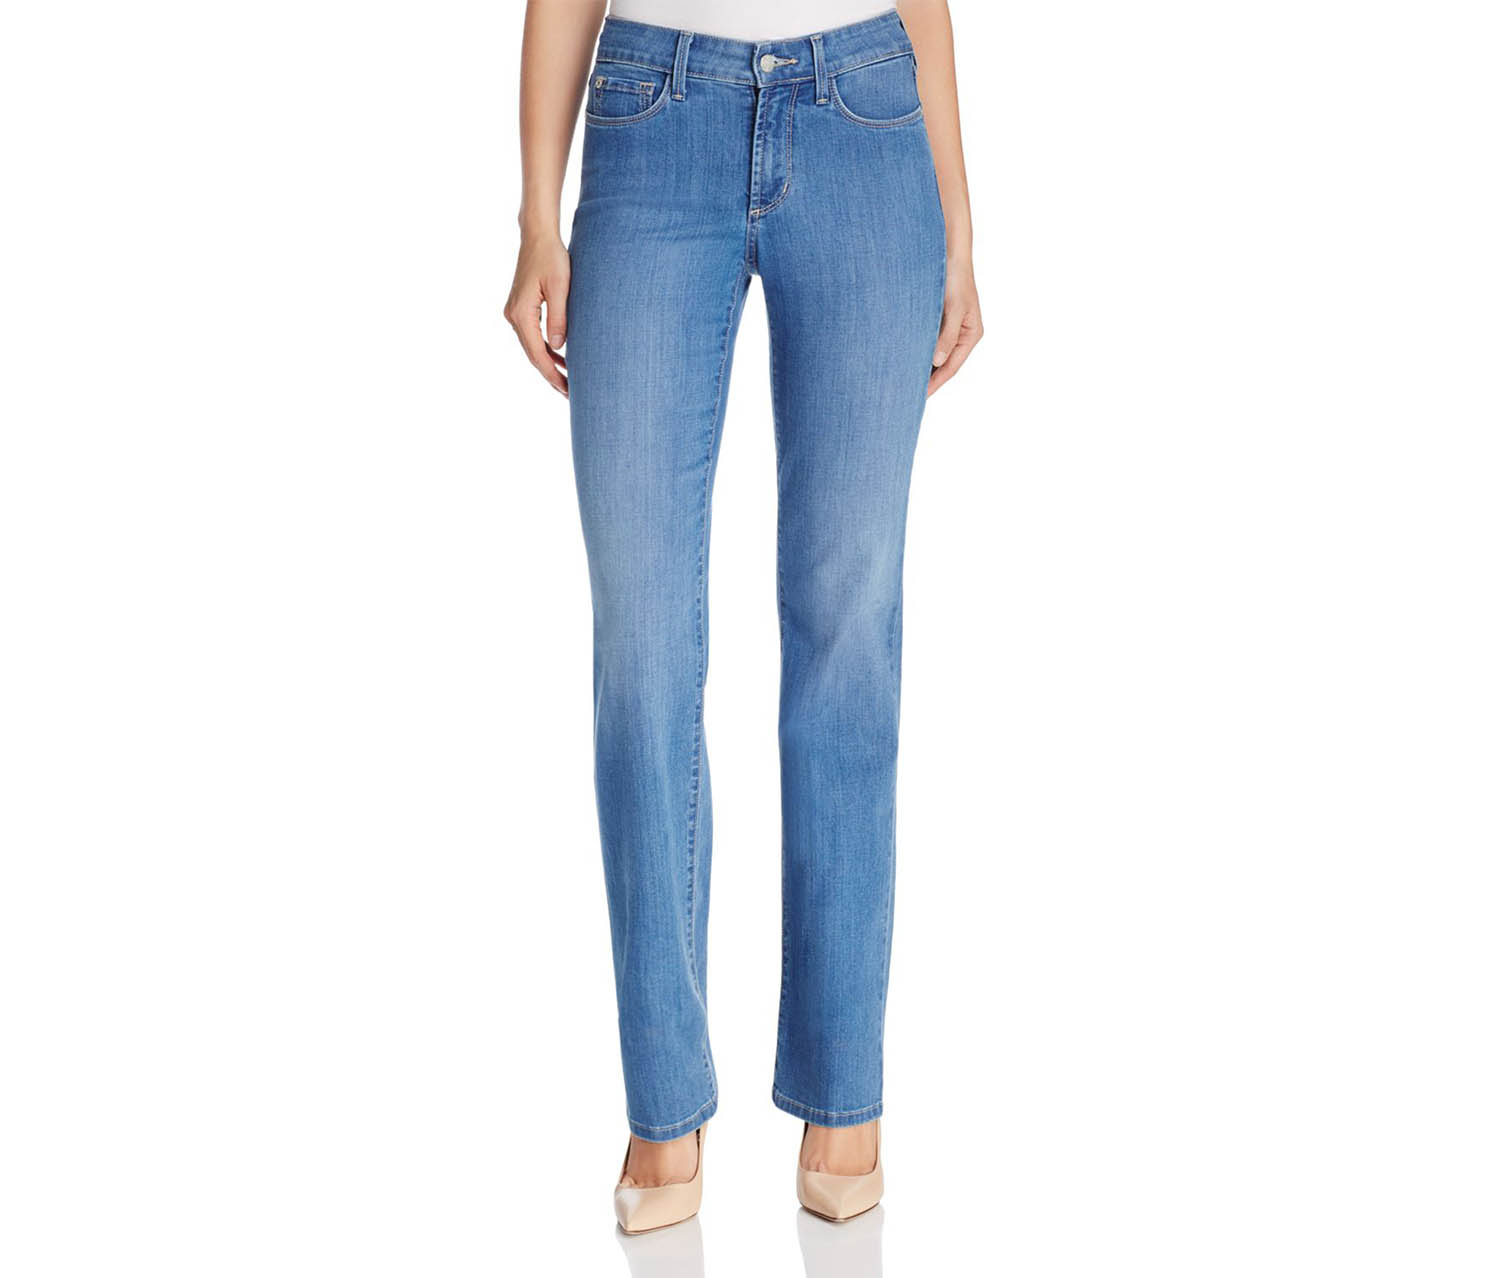 NYDJ Marilyn Arabian Sea Wash Jeans, blue